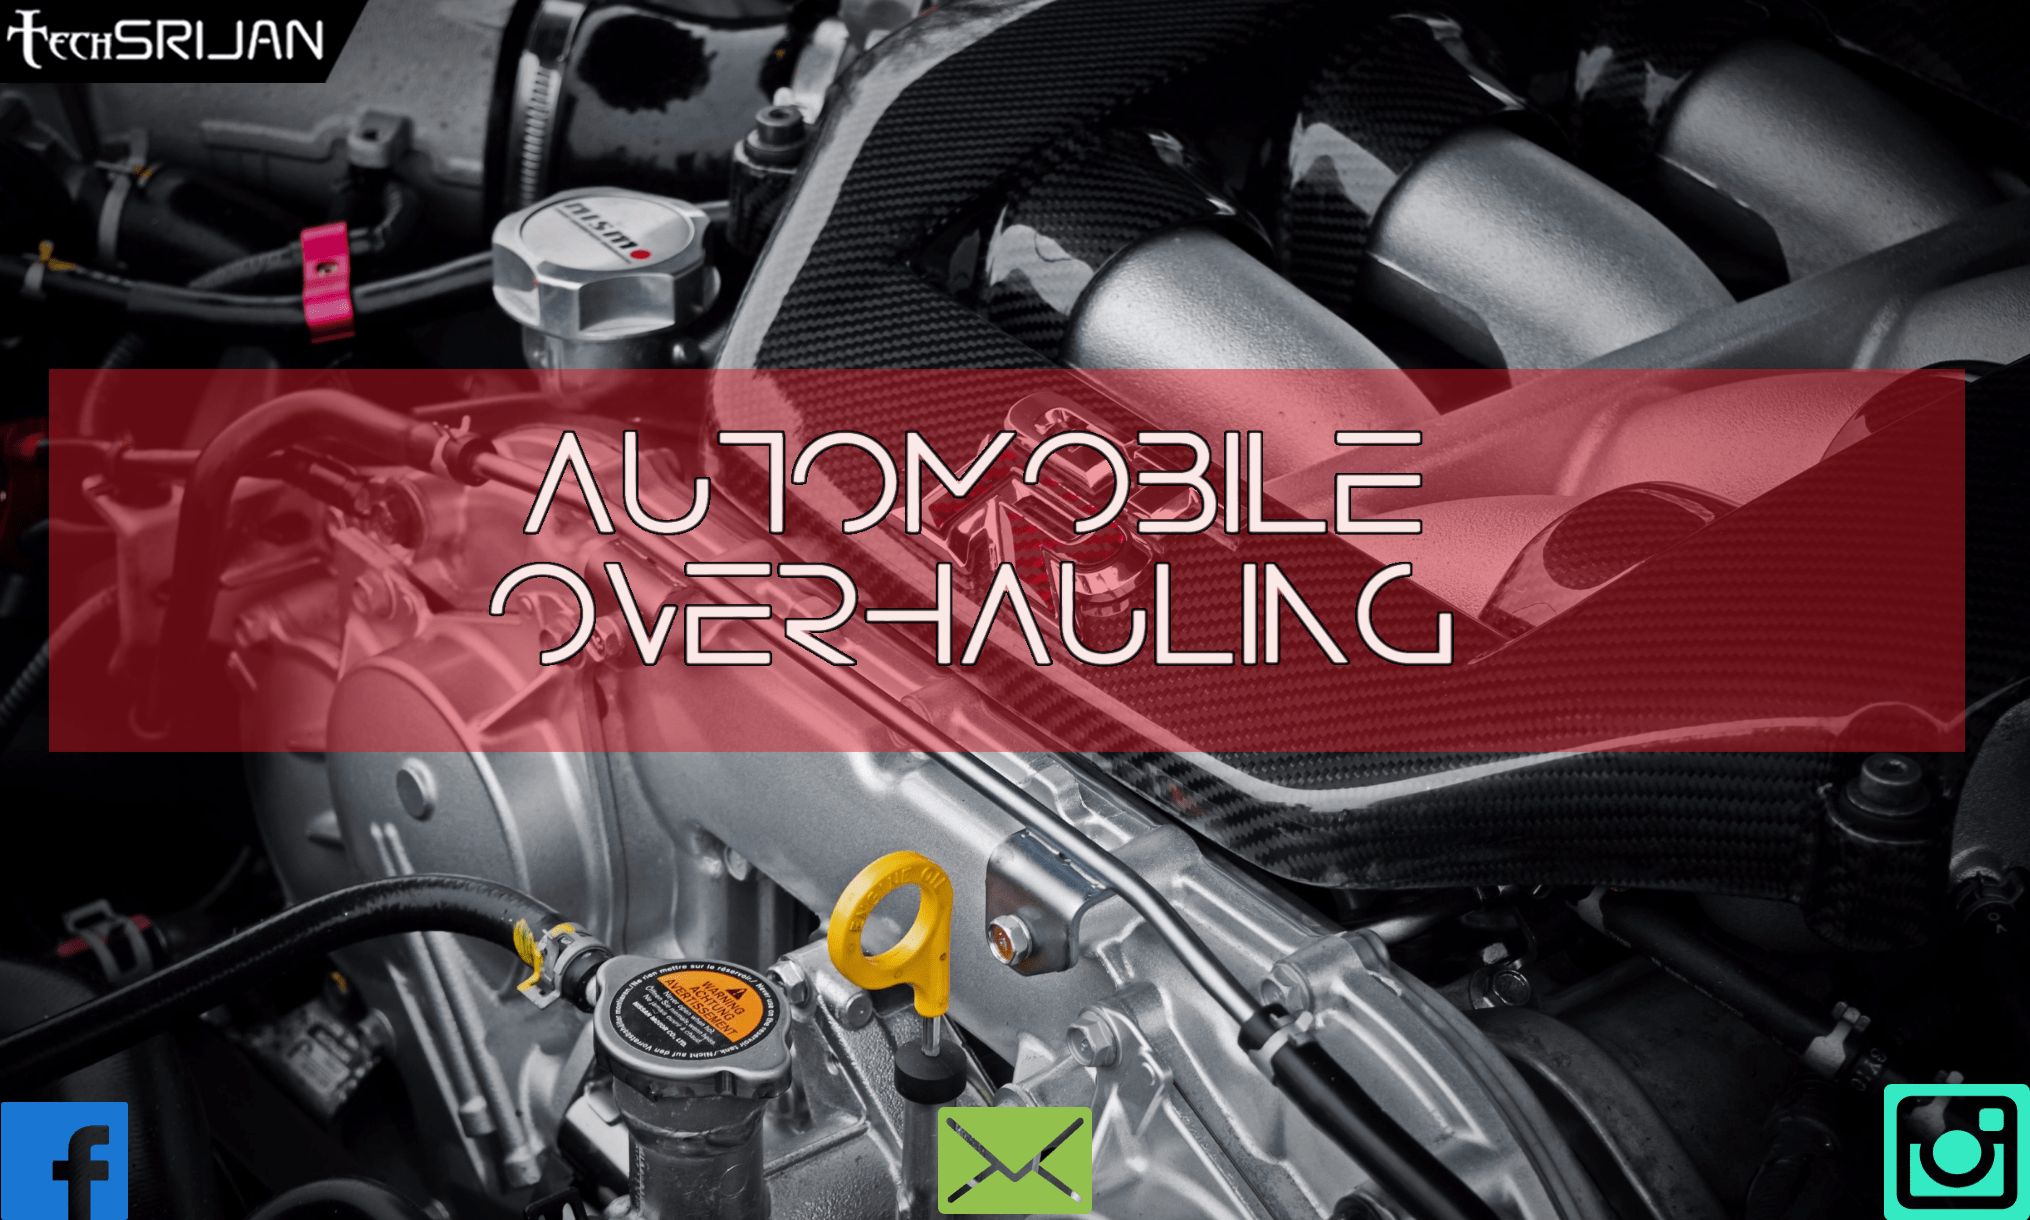 Car,                Motor,                Vehicle,                Engine,                Automotive,                Design,                Part,                Auto,                Motorcycle,                Accessories,                Lighting,                Product,                White,                 Free Image